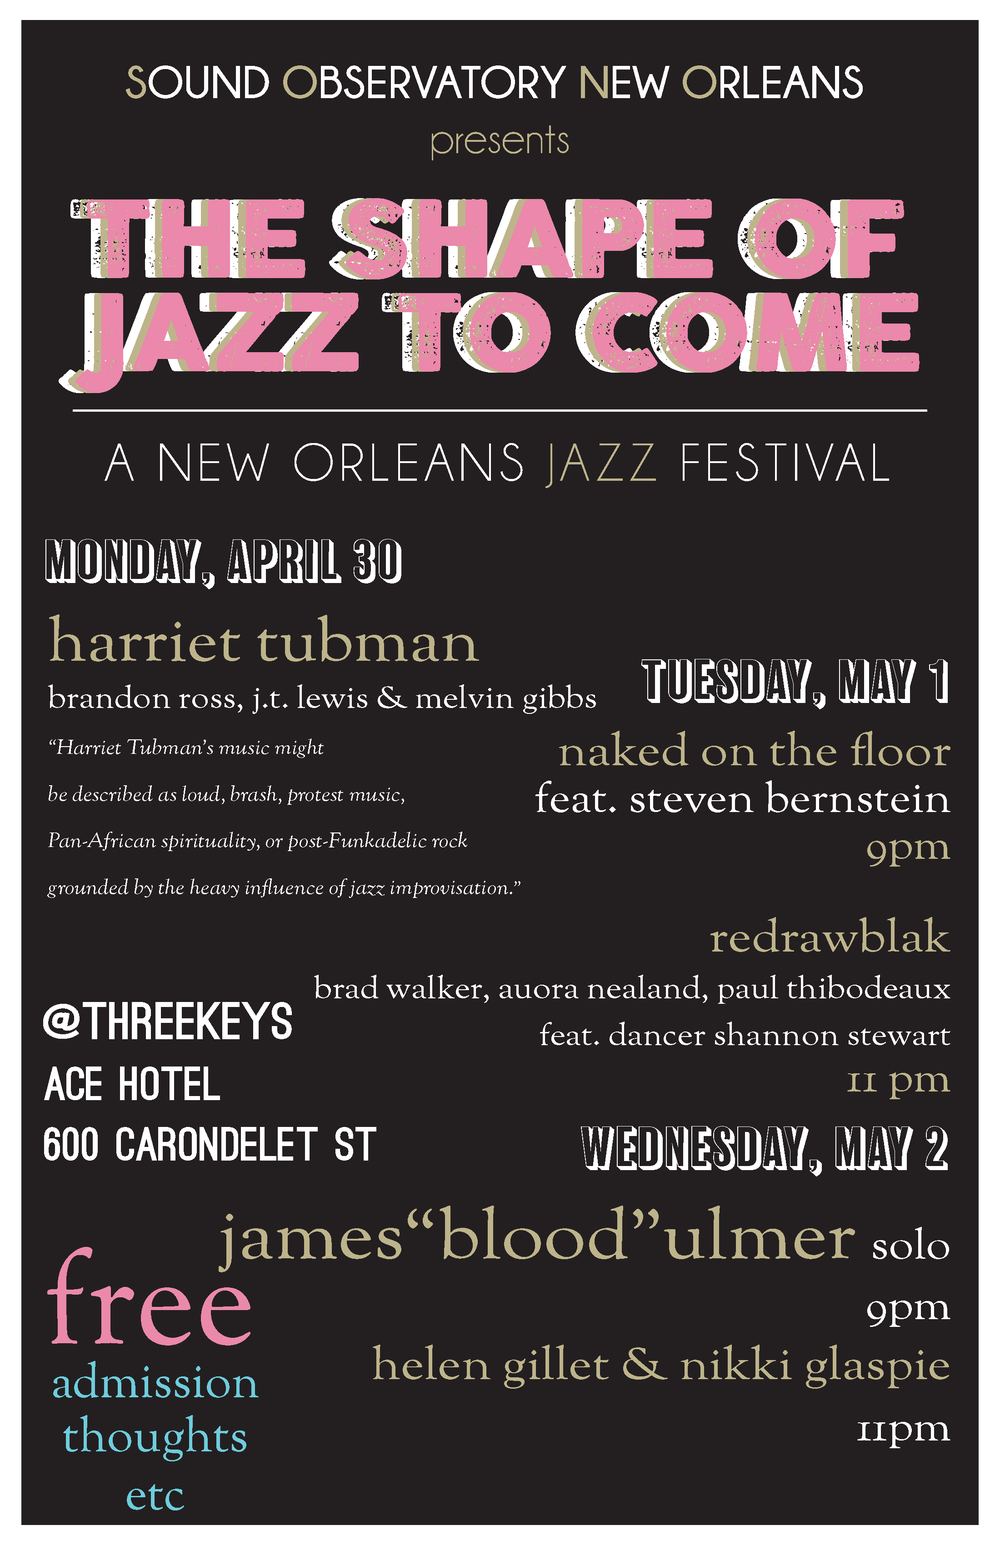 "SOUND OBSERVATORY NEW ORLEANS PRESENTS:   THE SHAPE OF JAZZ TO COME   April 30 – May 2  @Three Keys at Ace Hotel New Orleans:  600 Carondelet Street New Orleans  S ound Observatory New Orleans  presents a  FREE  three-day festival of new music from New Orleans most innovative ensembles and the masters that inspire them.  The festival –sized iteration of SONO's monthly series is re-introduction to the ideas of jazz in 2018 New Orleans in homage to Ornette Coleman. The Shape of Jazz to Come shows us what can happen in a community when we let the art take the lead.   On Monday, April 30th  we introduce New Orleans to the genre bending music of  Harriet Tubman: the band.  Based in NYC and   deeply inspired by the ideals of freedom, Harriet Tubman's music plumbs the souls depths for liberated musical expression. The music of Harriet Tubman is a continuation of contextual and musical innovation exhibited by artists like Ornette Coleman, Jimi Hendrix, Derrick May, Art Ensemble of Chicago and Parliament-Funkadelic. It is the passion project of guitarist  Brandon Ross , bassist  Melvin Gibbs  and drummer  J.T. Lewis – now in it's 20th year.   The New York Times named their latest release  Arminata  (Sunnyside) to its top ten albums of 2017. Simply put, Harriet Tubman is required listening for anyone enthusiastically attending or vehemently rejecting the 2018 New Orleans Jazz Fest.   9PM FREE.        Tuesday, April 1st   NEW ORLEANS NEW MUSIC DOUBLE BILL:     9PM Naked on the Floor  with special guest  Steven Bernstein    11PM::  redrawblak  featuring  Shannon Stewart       Naked on the Floor features the music of composer/arranger  Jonathan Freilich  (Naked Orchestra, New Orleans Klezmer All –Stars), longtime band member  James Singleton  (Astral Project, James Booker) on bass,  Doug Garrison  (Iguanas) on drums,  Dan Oestreicher  (Trombone Shorty) on baritone sax,  Brent Rose ( Joe Crown) on tenor sax and special guest  Steven Bernstein  (Sex Mob, Bernstein, Butler ) on trumpet. Freilich's compositions make use of the surroundings by taking classic New Orleans instrumentations, and driving street beats and spin them into anthems and ballads all with a slight tinge of madness.  A true musicians' musician, Freilich has an uncanny ability to put a band together and each concert is rare and special occasion.      11PM::  redrawblak  featuring  Shannon Stewart    The experiential,  redrawblak  is the electronically infused project of saxophonist  Brad Walker,  (Sturgill Simpson )  joined by multi-instrumentalist  Aurora Nealand , and drummer  Paul Thibodeaux.  Tonight the trio is joined by modern dancer and choreographer  Shannon Stewart , and brings the best of New Orleans improvisational underground scene into the festival fray.       Wednesday May 2       9PM James Blood Ulmer Solo     11PM Helen Gillet & Nikki Glaspie       James Blood Ulmer  at 78 is among the most distinctive and influential electric guitarists to arise in the past four decades. A direct descendant of Ornette Coleman, James Blood Ulmer has made a career built on left turns and reinvention. And now in the 21st century, Ulmer continues to progress as his most recent history finds him being recognized as an elder statesman of the blues. At the core, however, remains the one and only James Blood Ulmer. Tonight in an exclusive , solo blues performance that is not to be missed.   ""... the missing link between Jimi Hendrix and Wes Montgomery on one hand, between P-Funk and Mississippi Fred McDowell on the other.""– Greg Tate,  Village Voice    New Orleans cellist  Helen Gillet   is joined by drummer  Nikki Glaspie  (Beyonce, Nth Power) for a live- looping late set with a wide range of percussive sounds, melodies and vocal play from two powerhouse musicians of our time ."